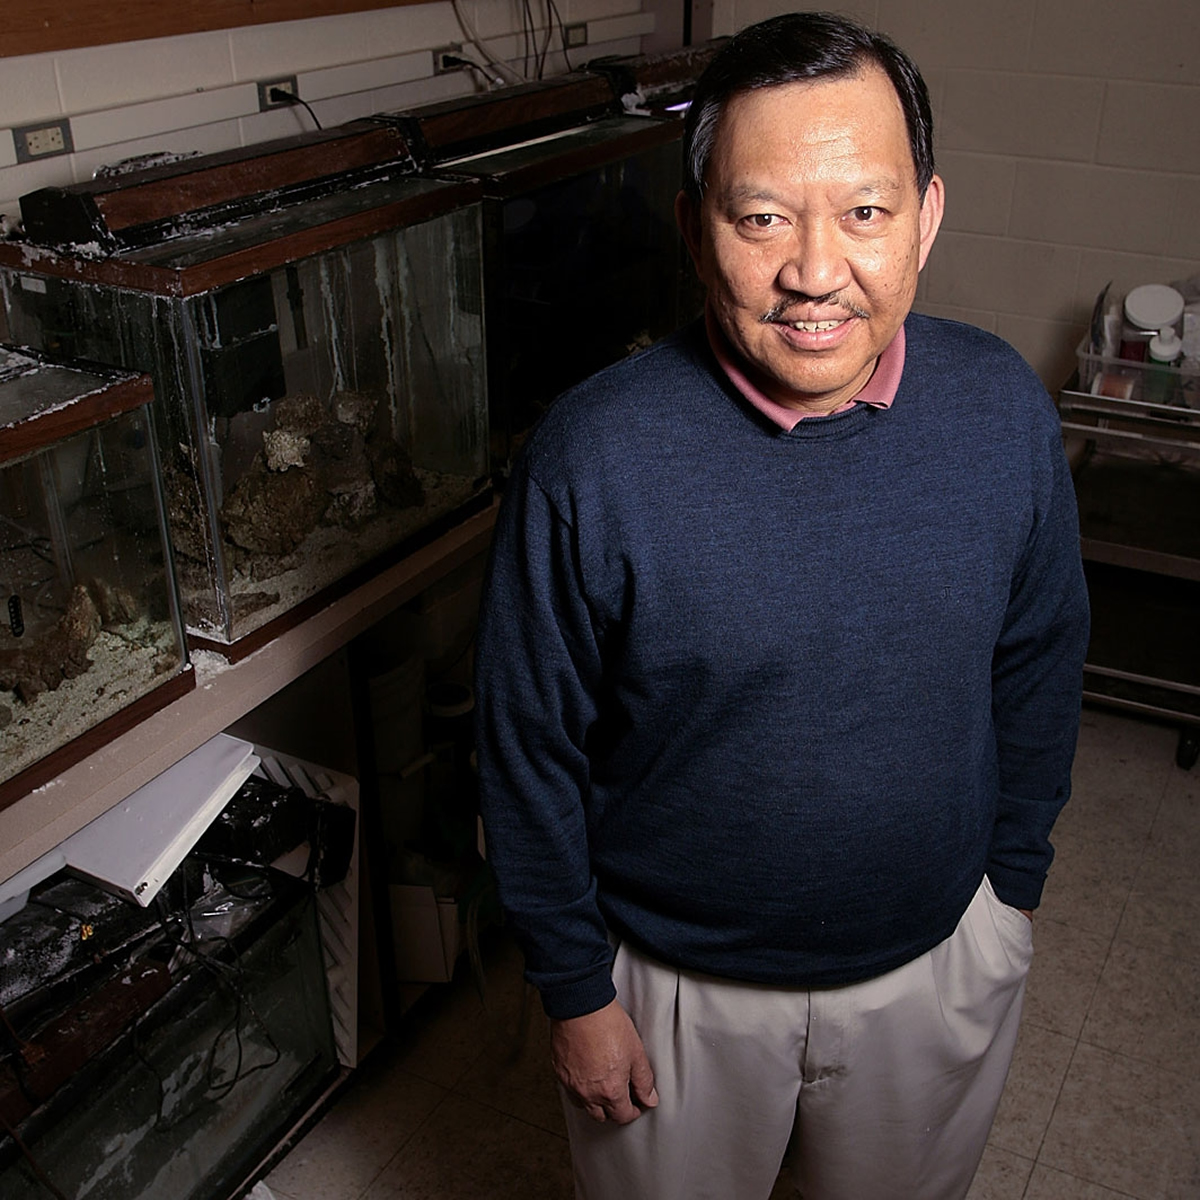 """Baldomero """"Toto"""" Olivera, a University of Utah biologist, is among 20 new """"Million-Dollar Professors"""" named by the Howard Hughes Medical Institute in a program that emphasizes teaching to bring bright young people into science."""